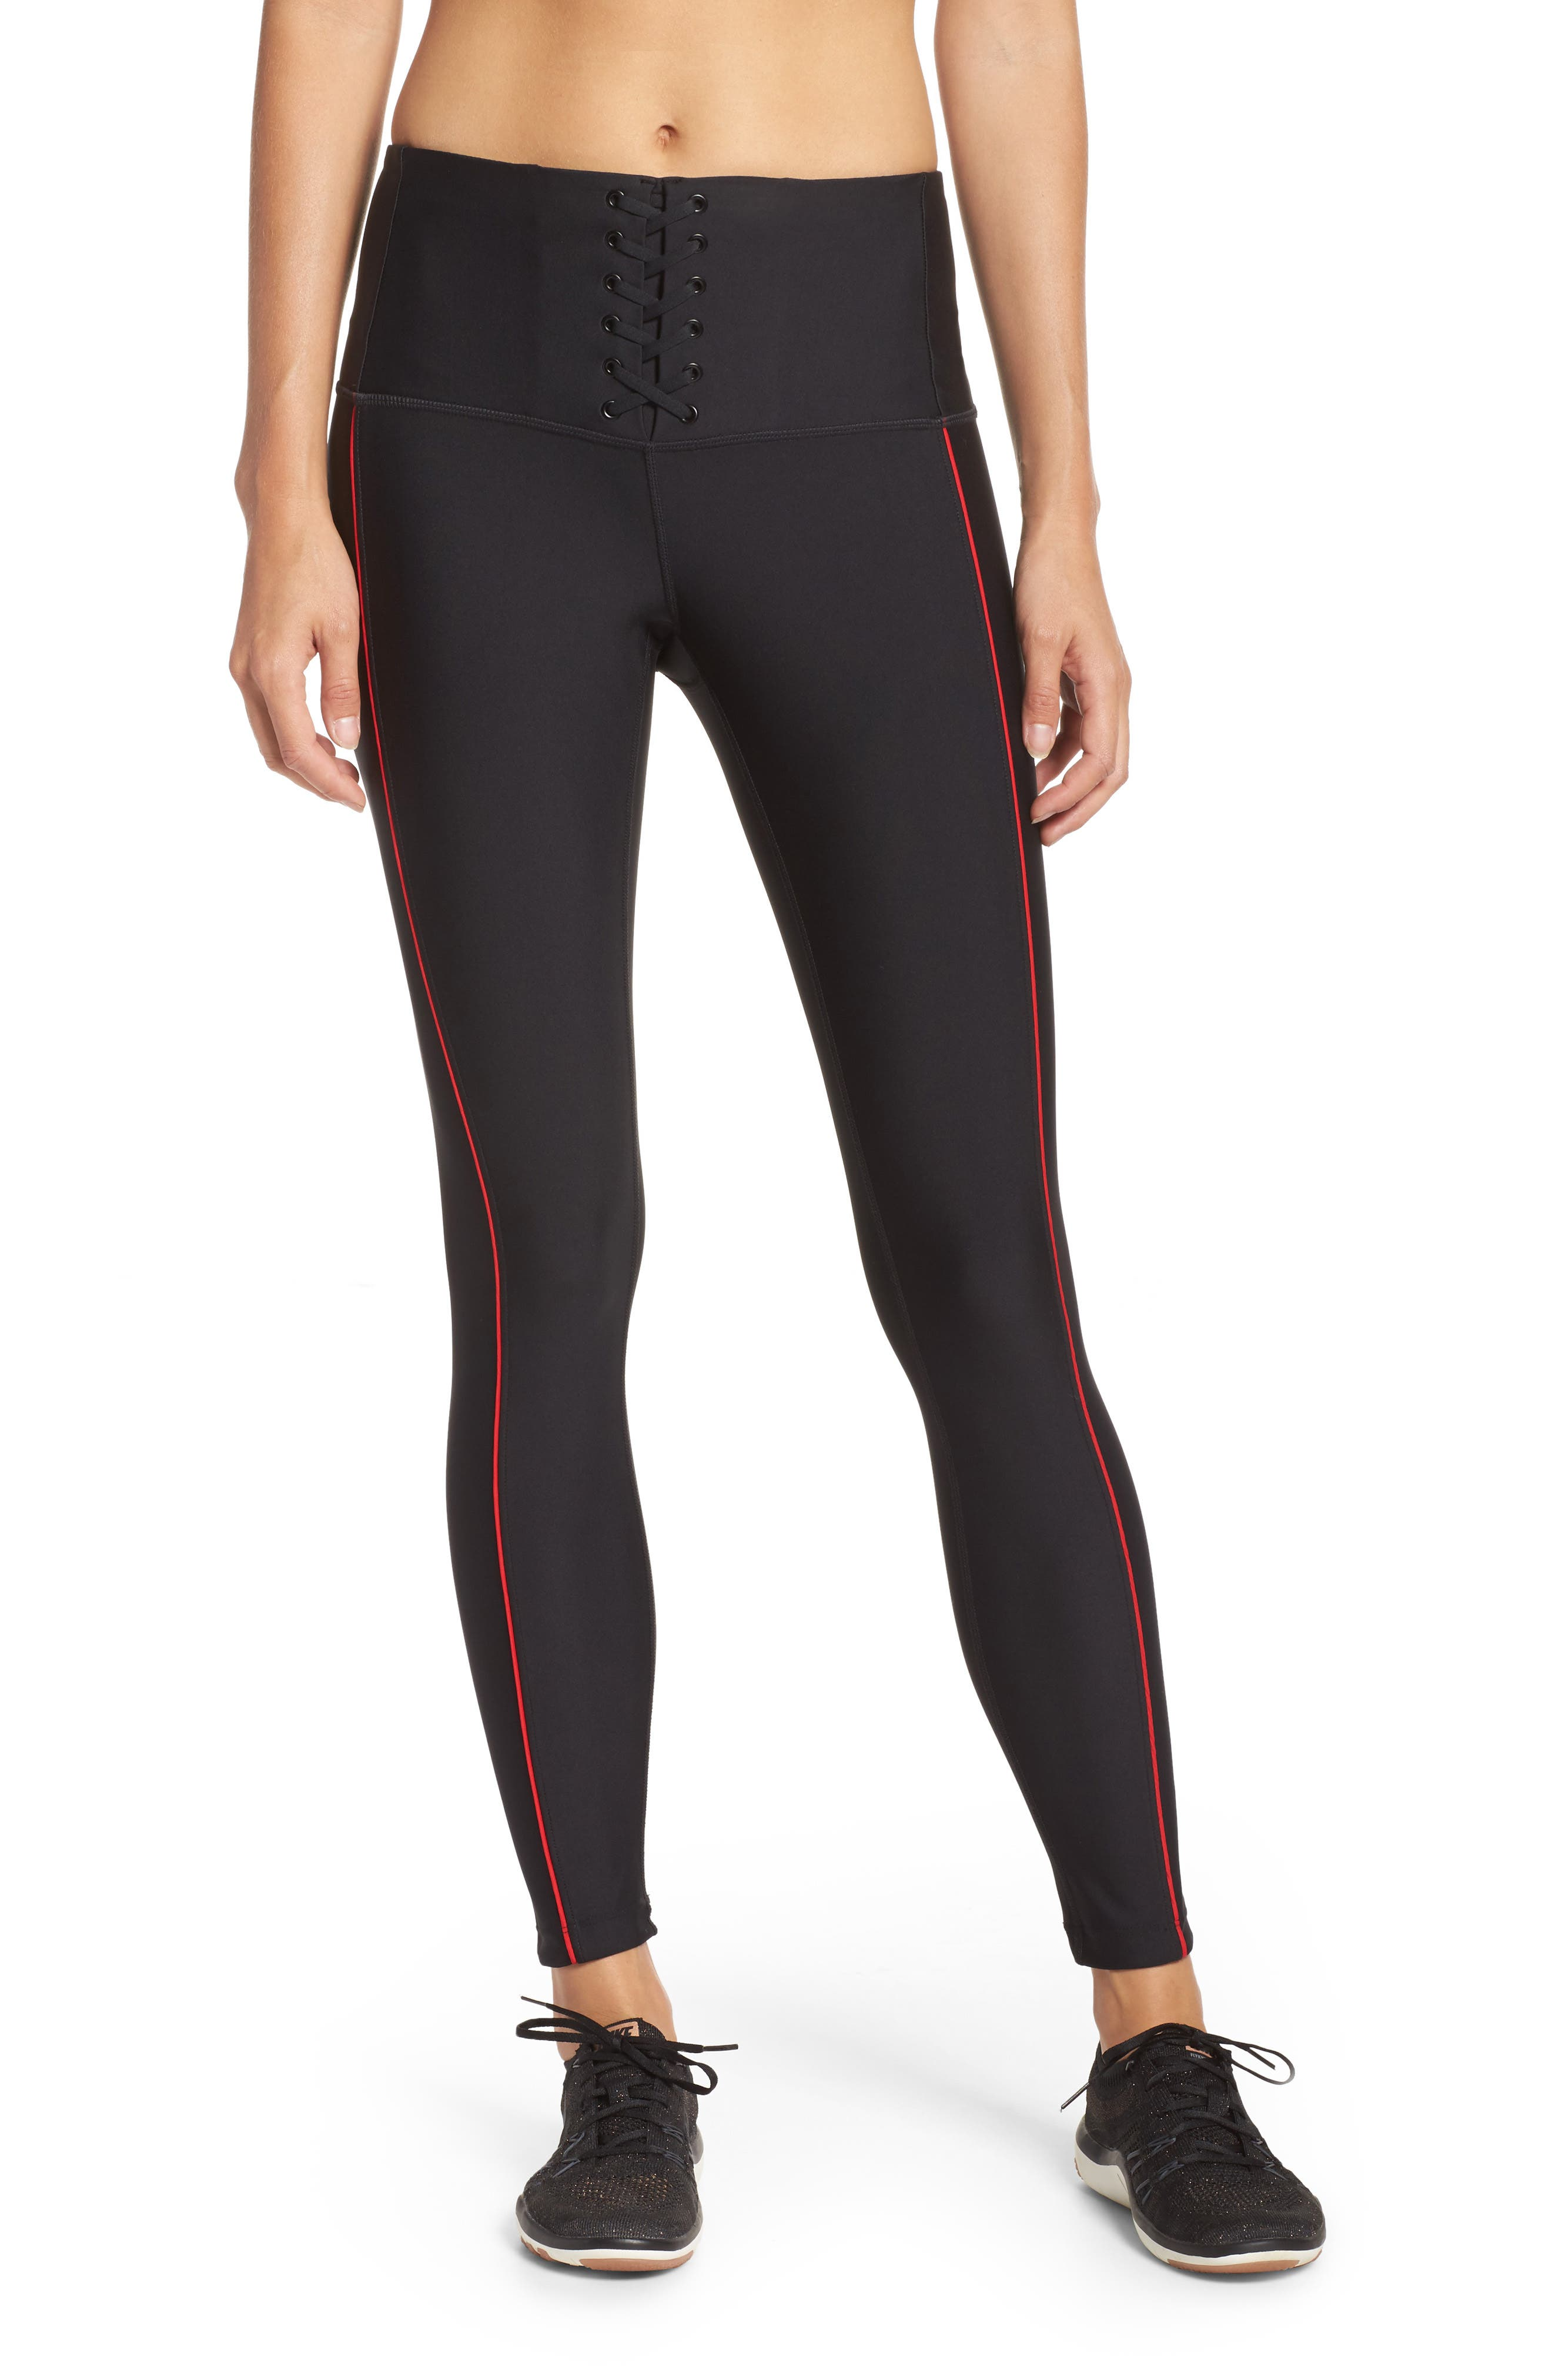 Alternate Image 1 Selected - Zella High Waist Lace-Up Ankle Leggings